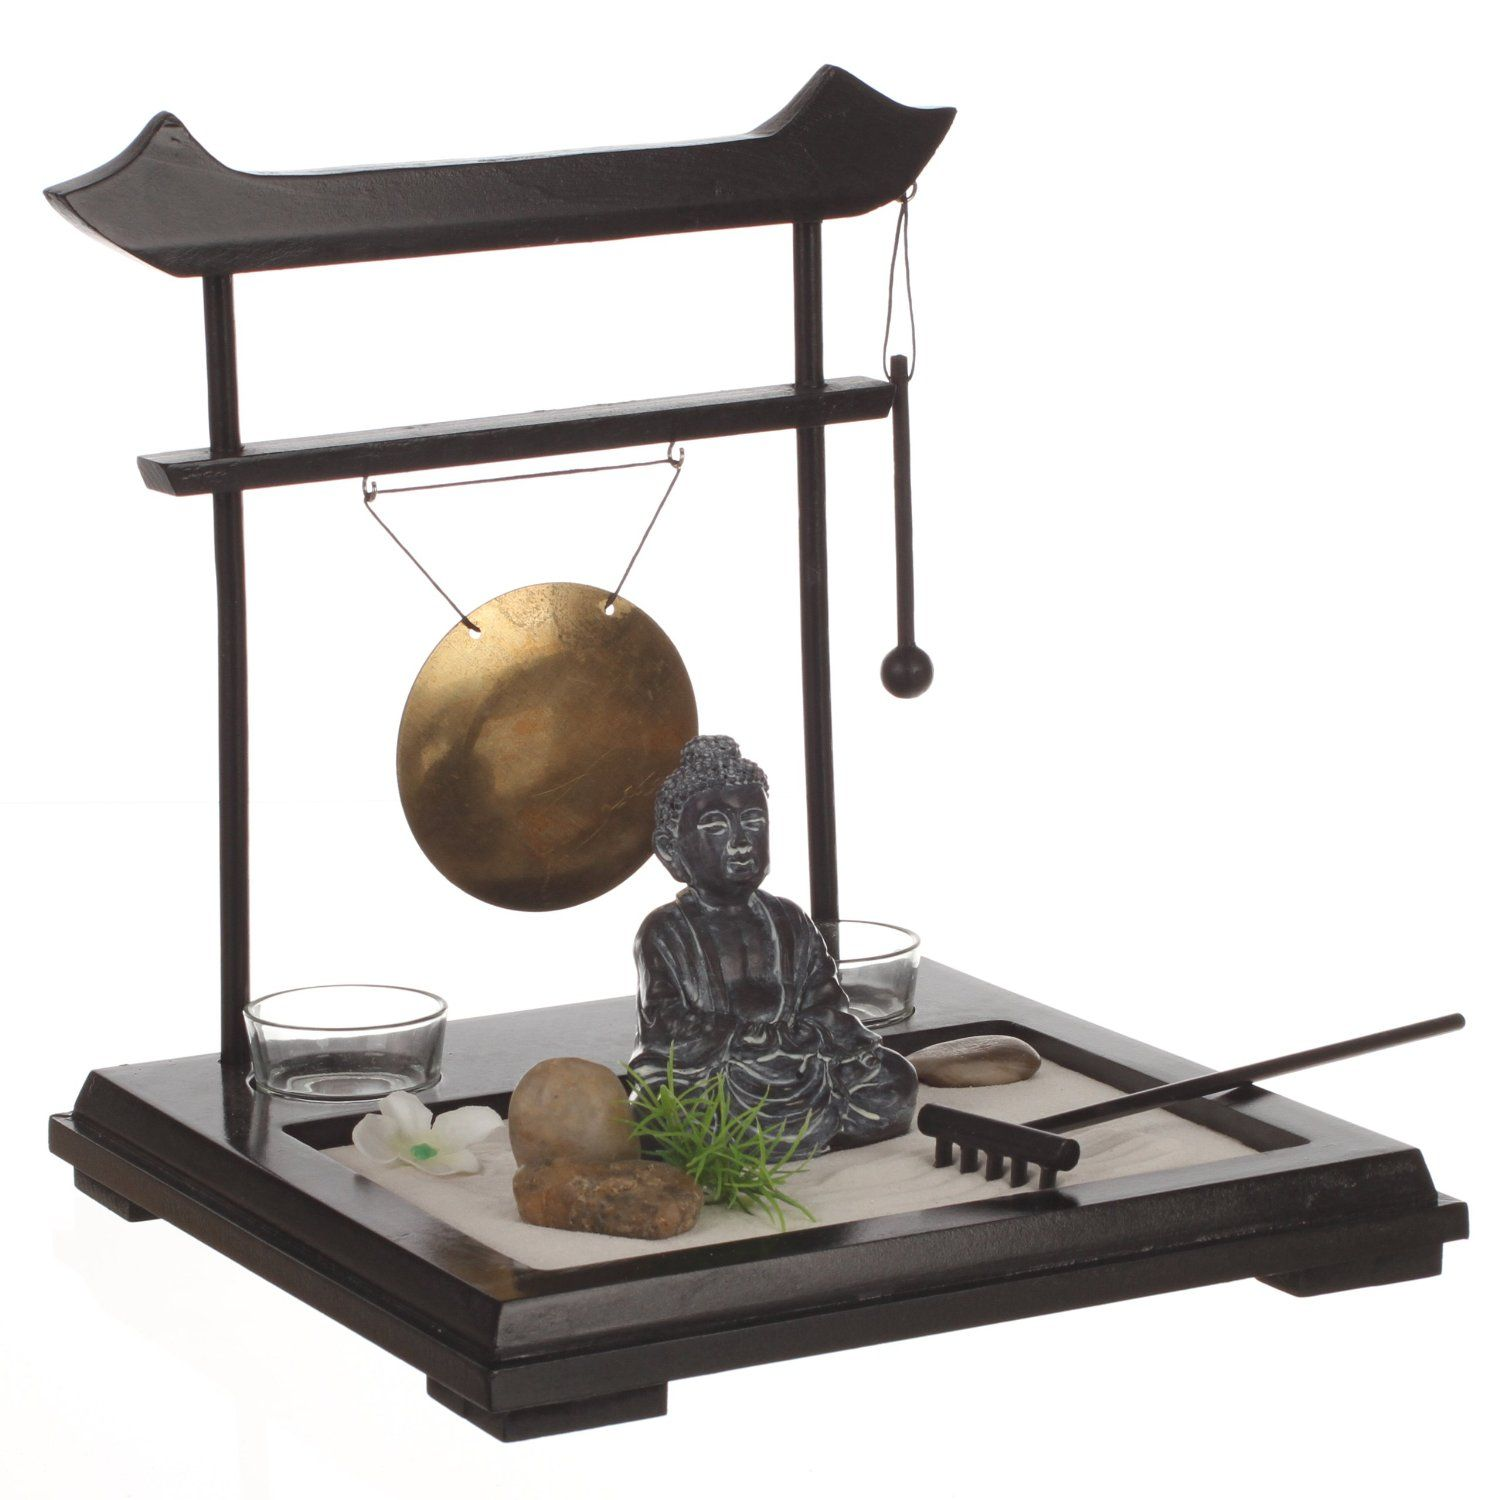 Zen Garden Set Buddha On Wooden Tray With Gong 2 Candleholders Flower And Plant Sand And Pebbles Etc Am Zen Garden Miniature Zen Garden Mini Zen Garden